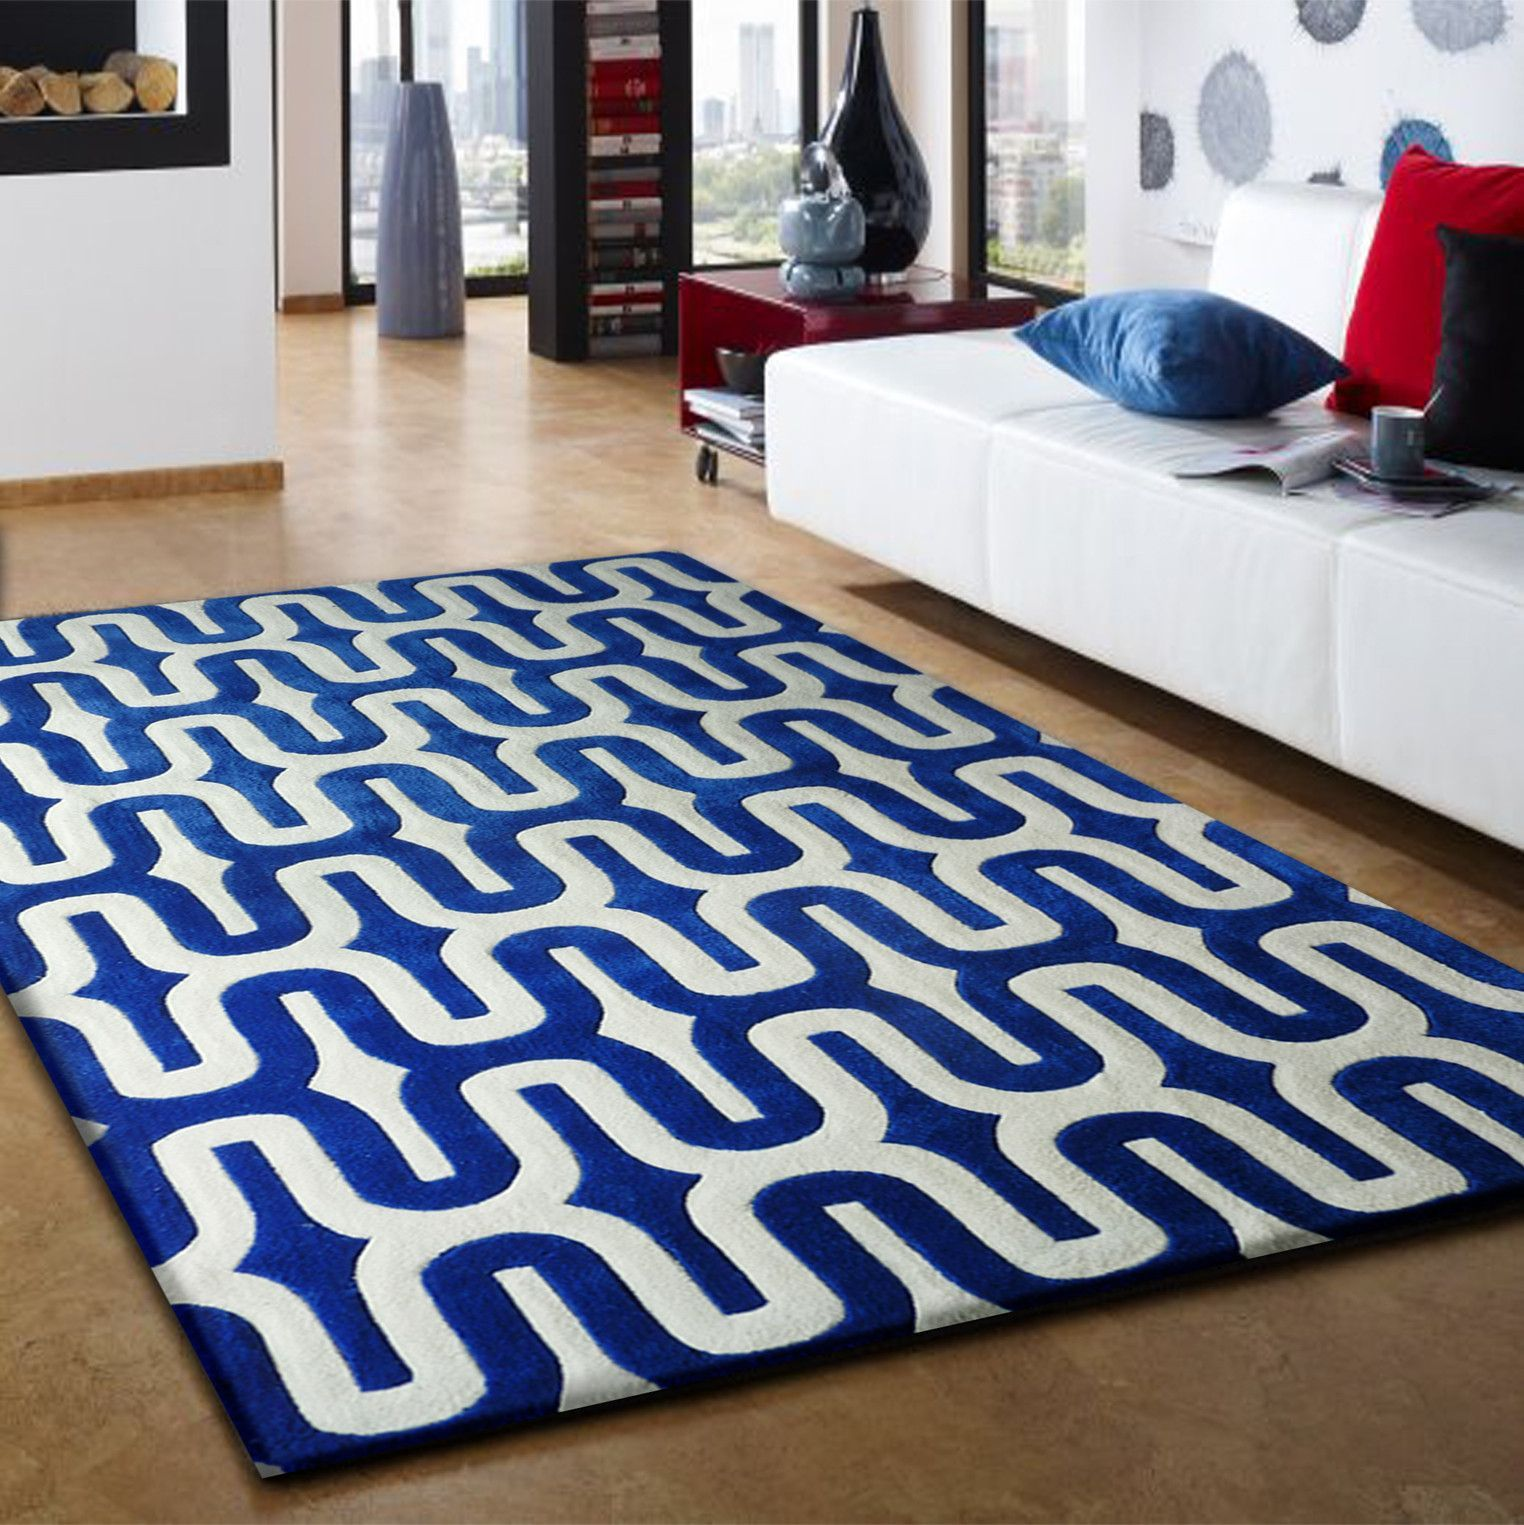 3 Piece Set Linear Design Vibrant Blue With White Area Rug Living Room